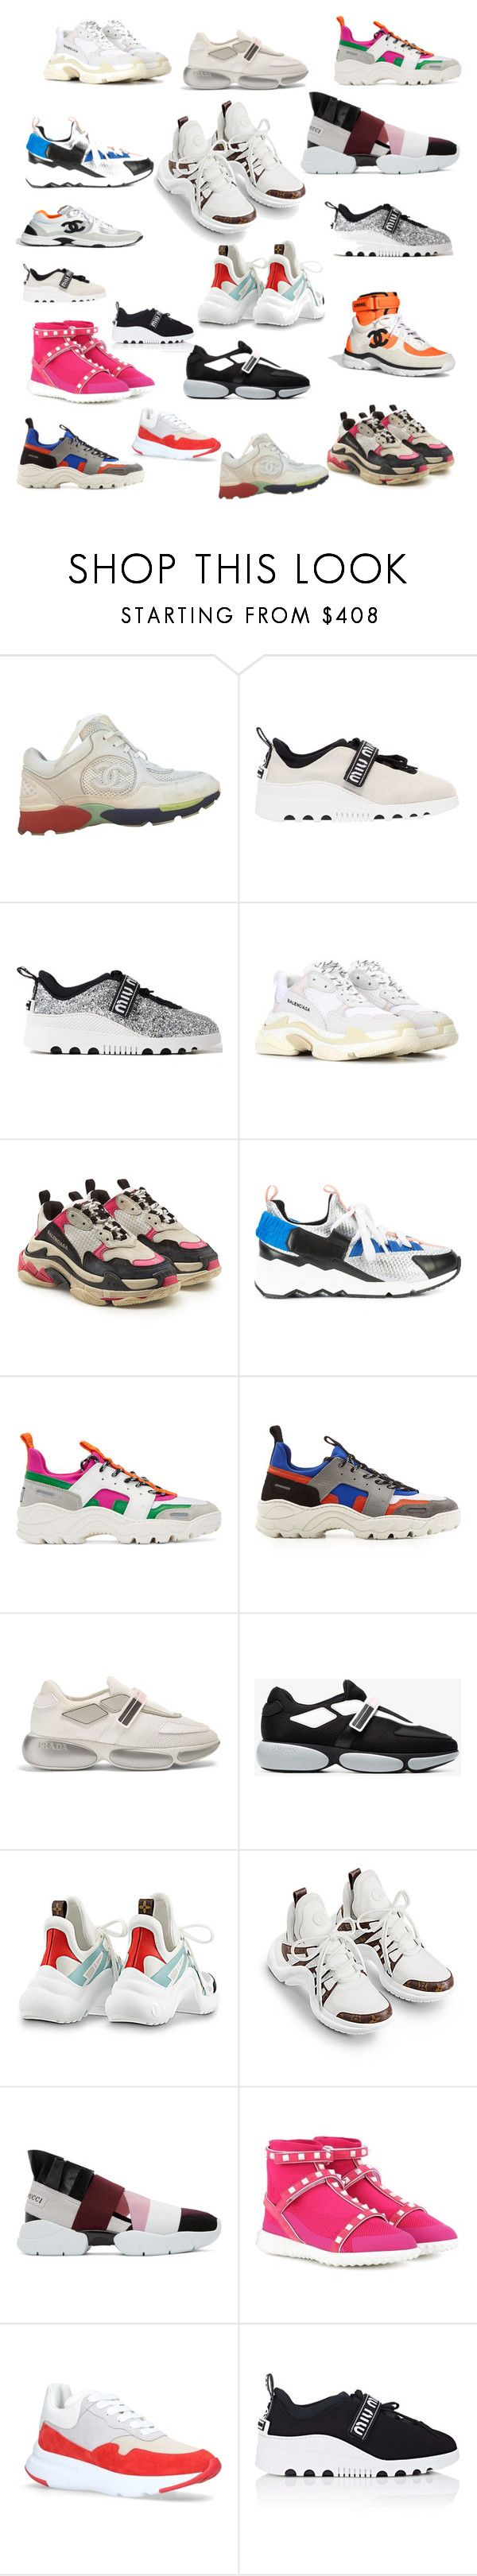 """Dad Shoes"" by nadinezvous on Polyvore featuring mode, Chanel, Miu Miu, Balenciaga, Pierre Hardy, AMI, Prada, Louis Vuitton, Emilio Pucci et Valentino"